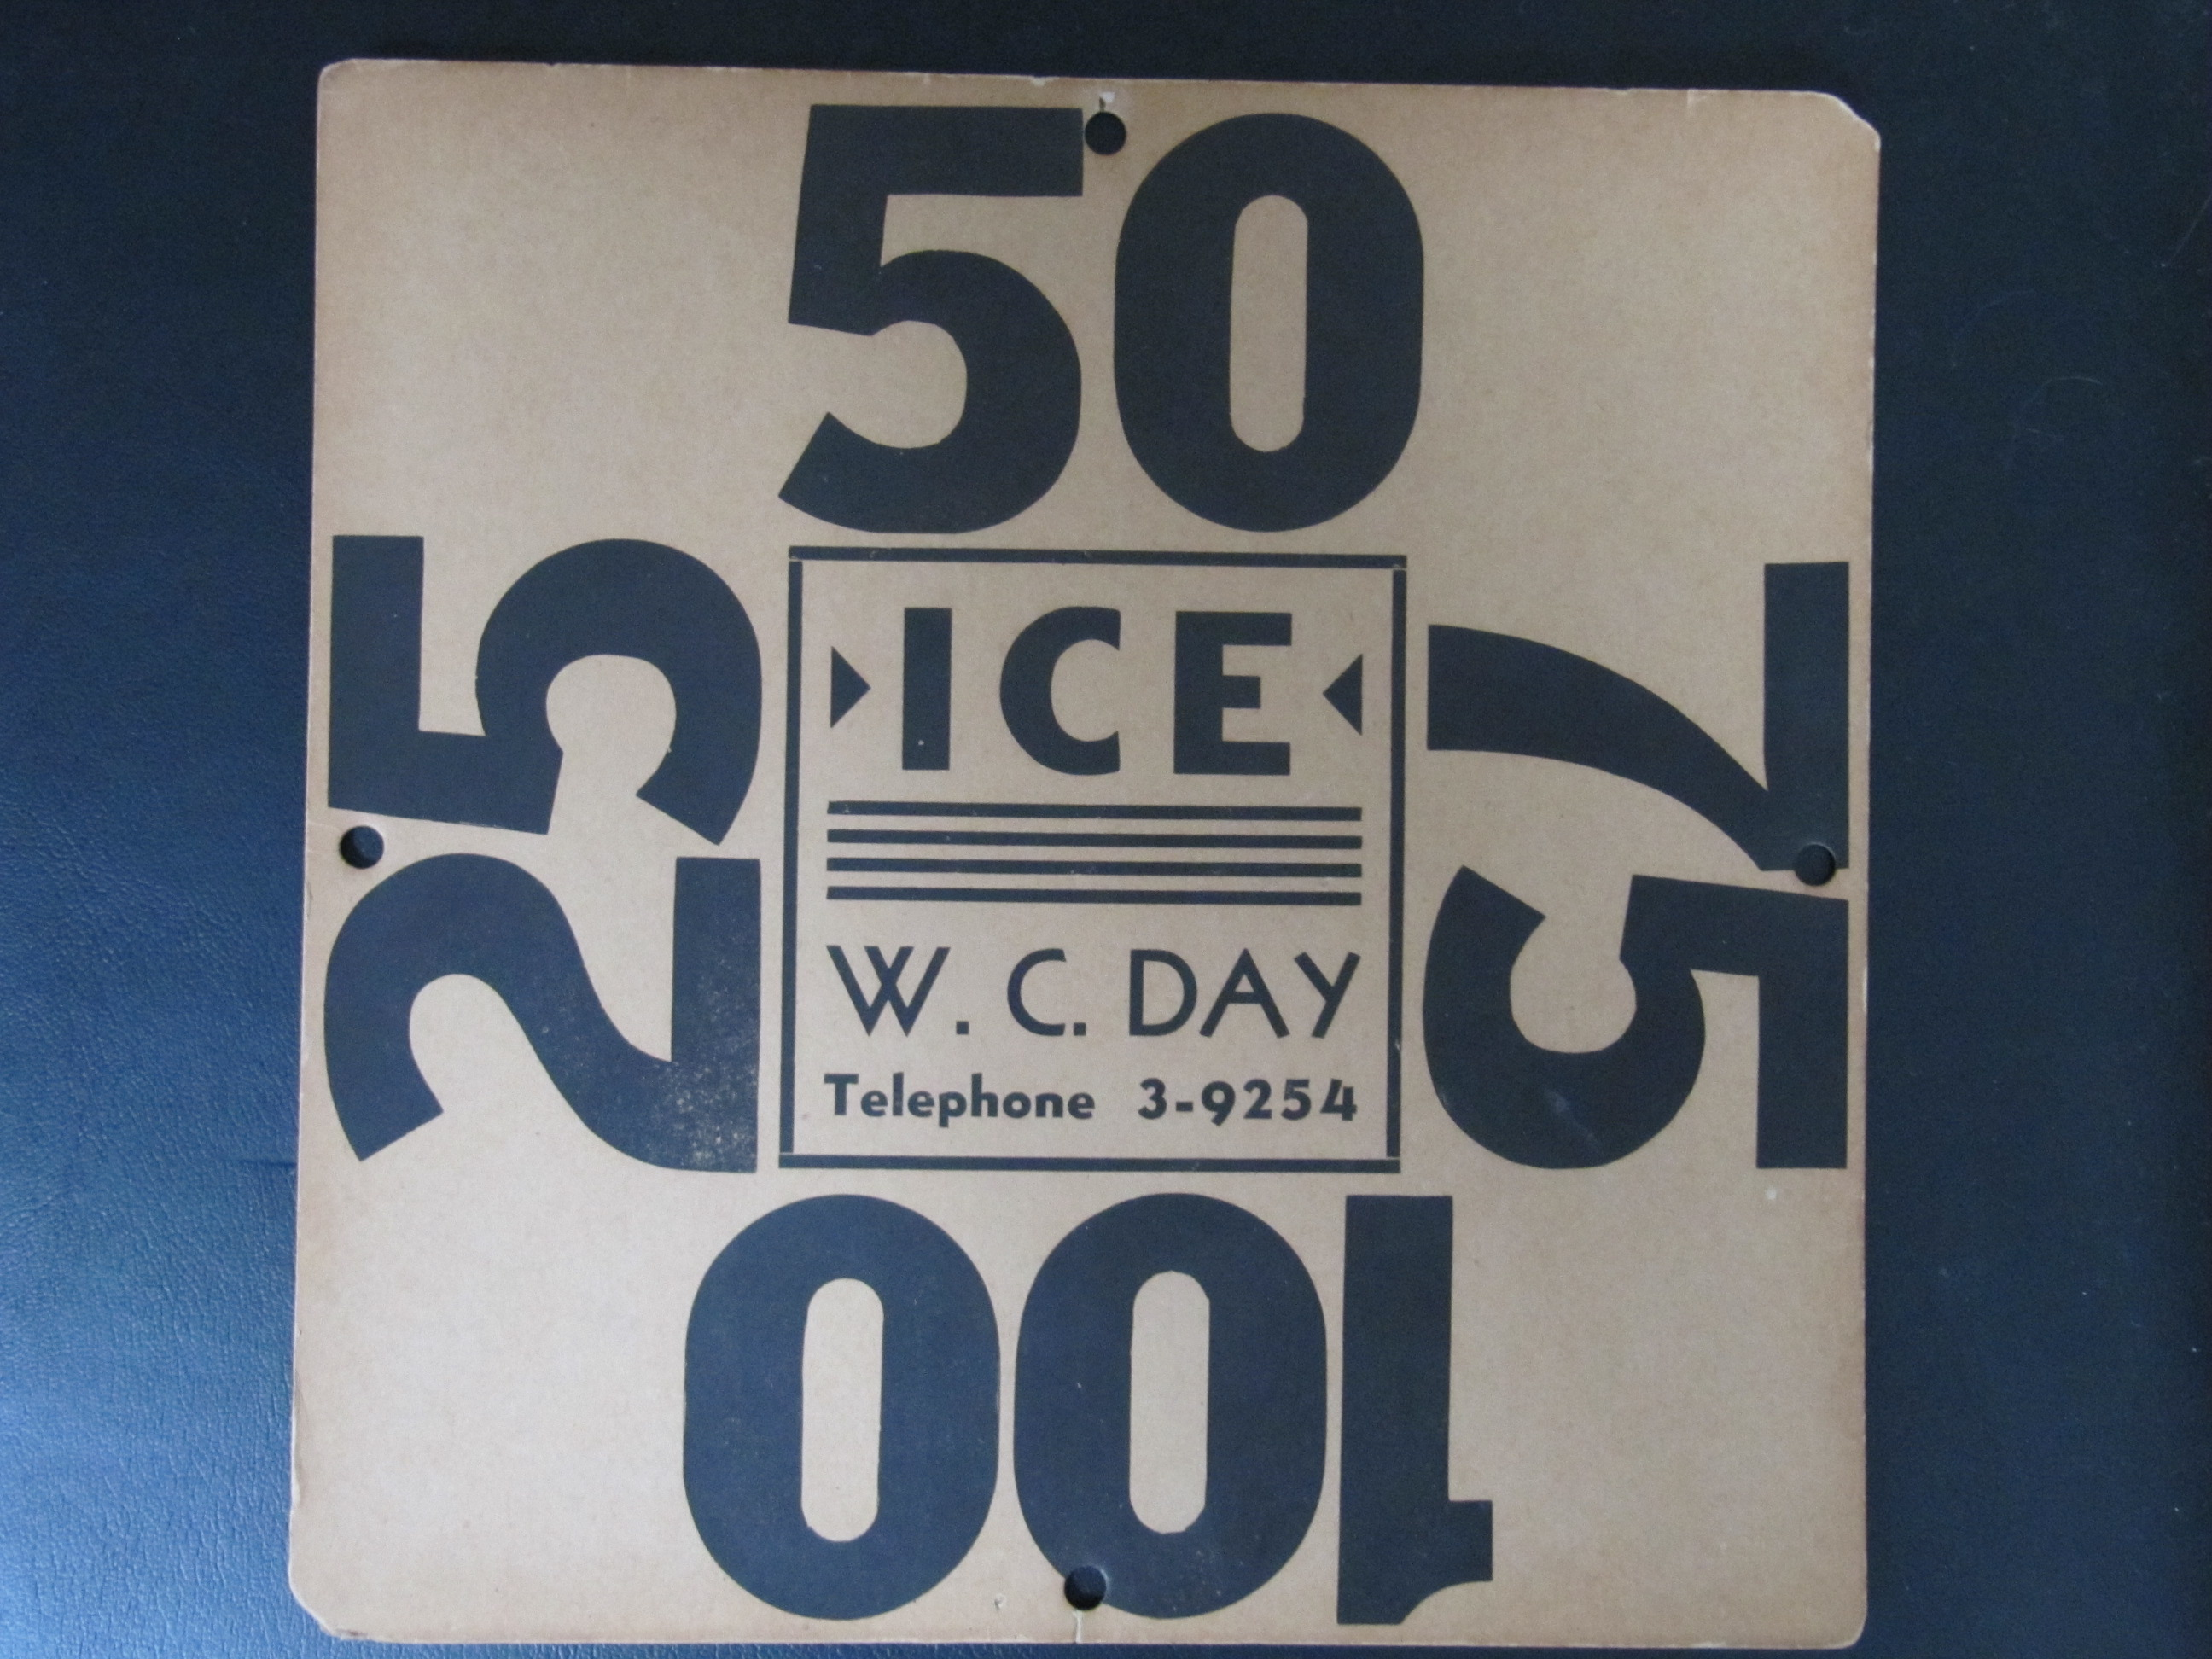 WC Day